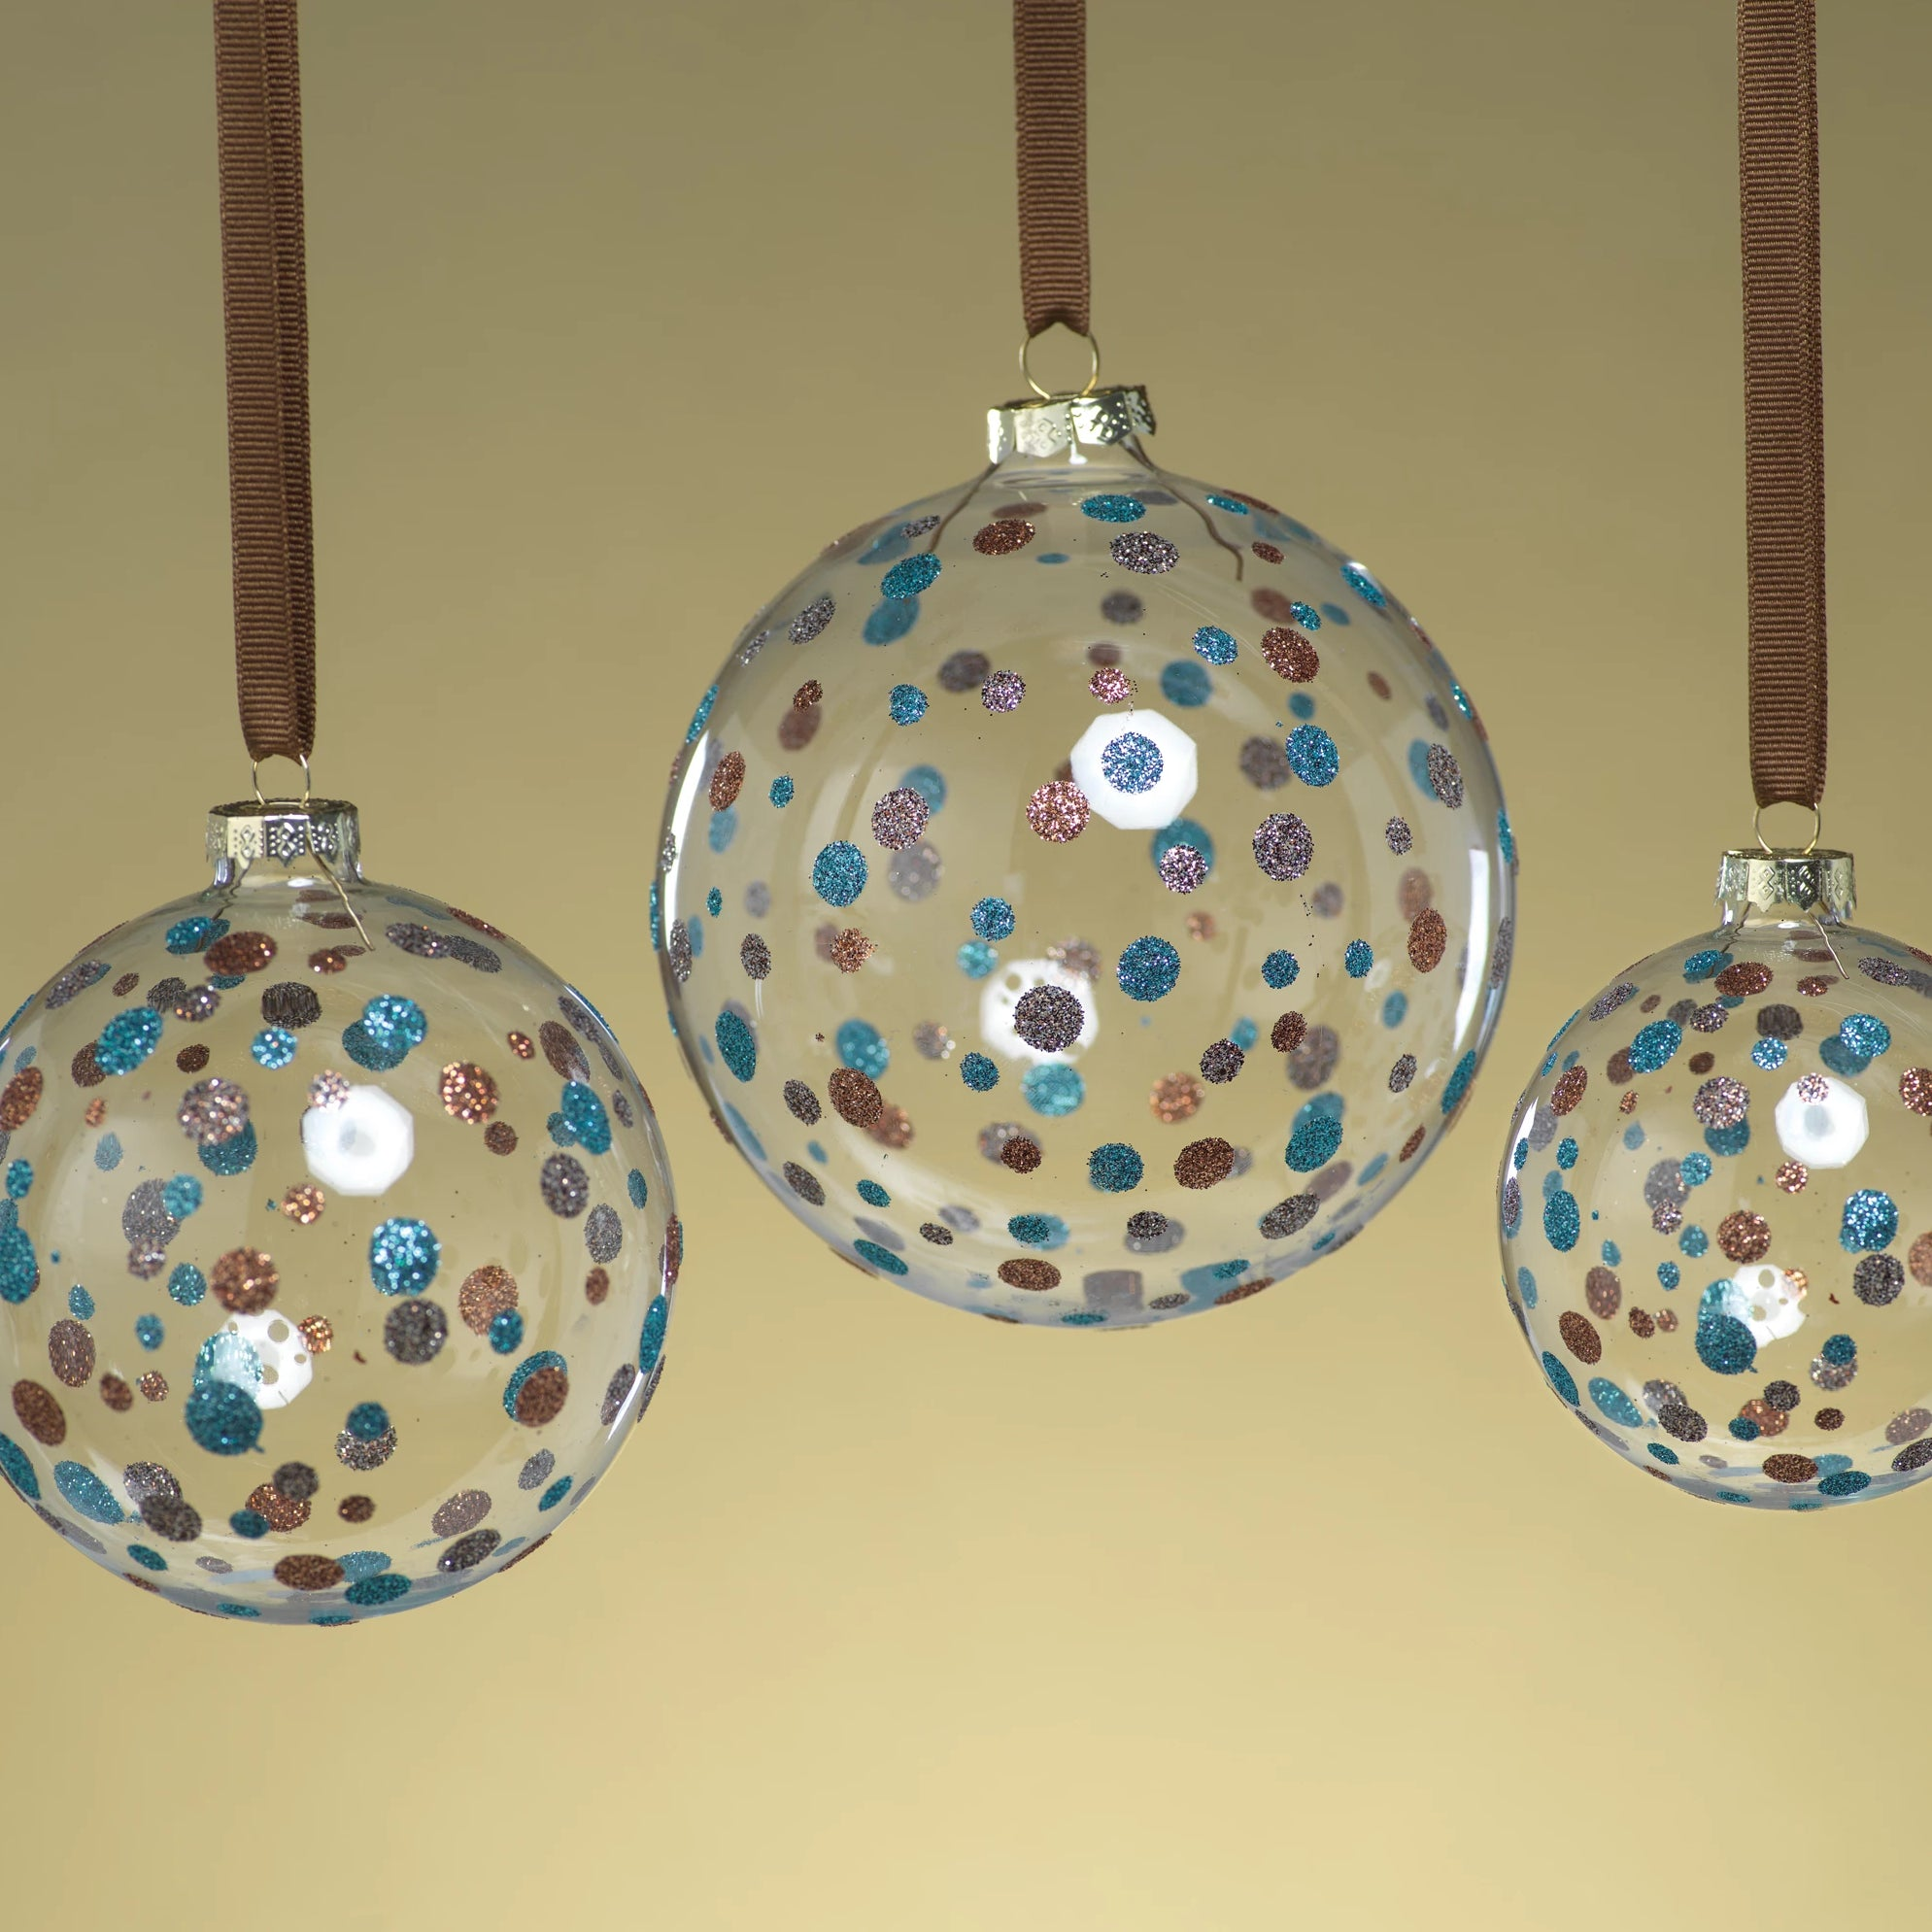 Clear Ball Ornament w/Glitter Dots - Blue - CARLYLE AVENUE